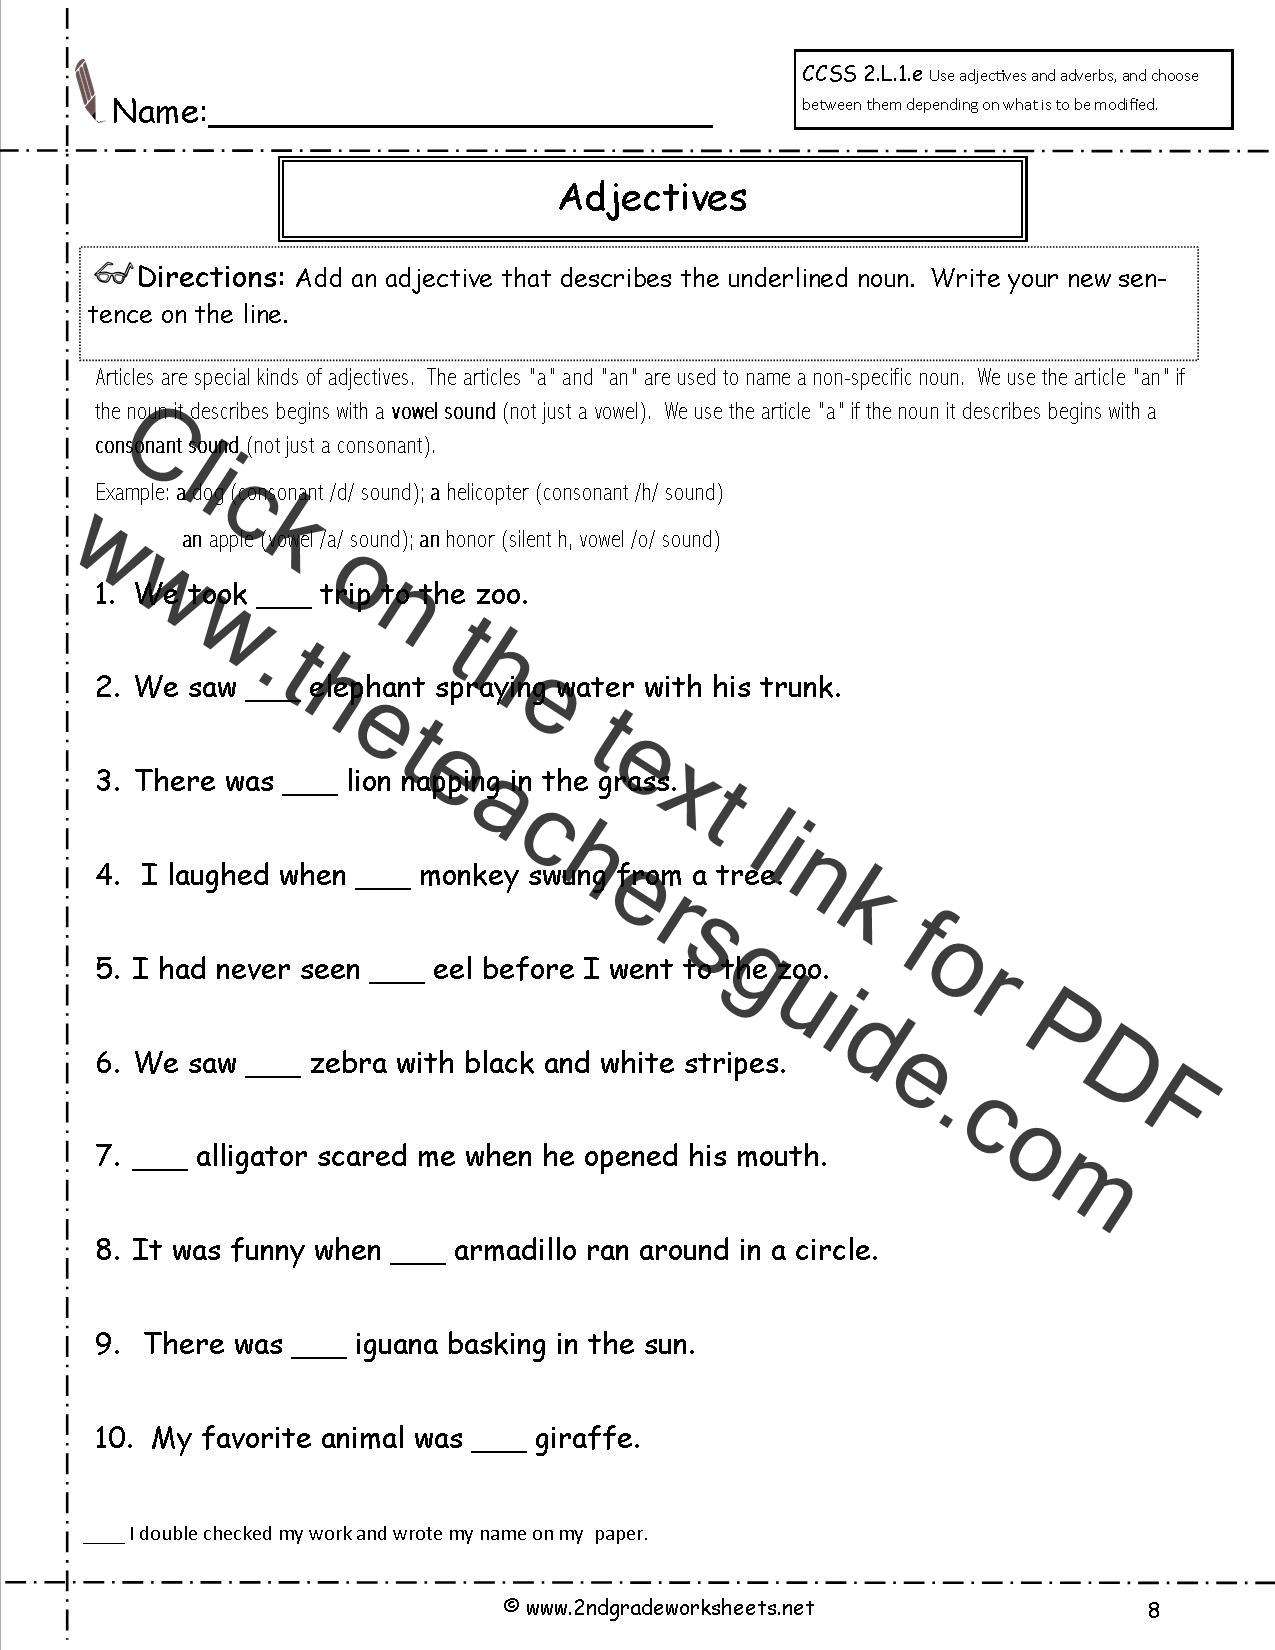 Printables Grammar Worksheets 2nd Grade free languagegrammar worksheets and printouts adjectives worksheets